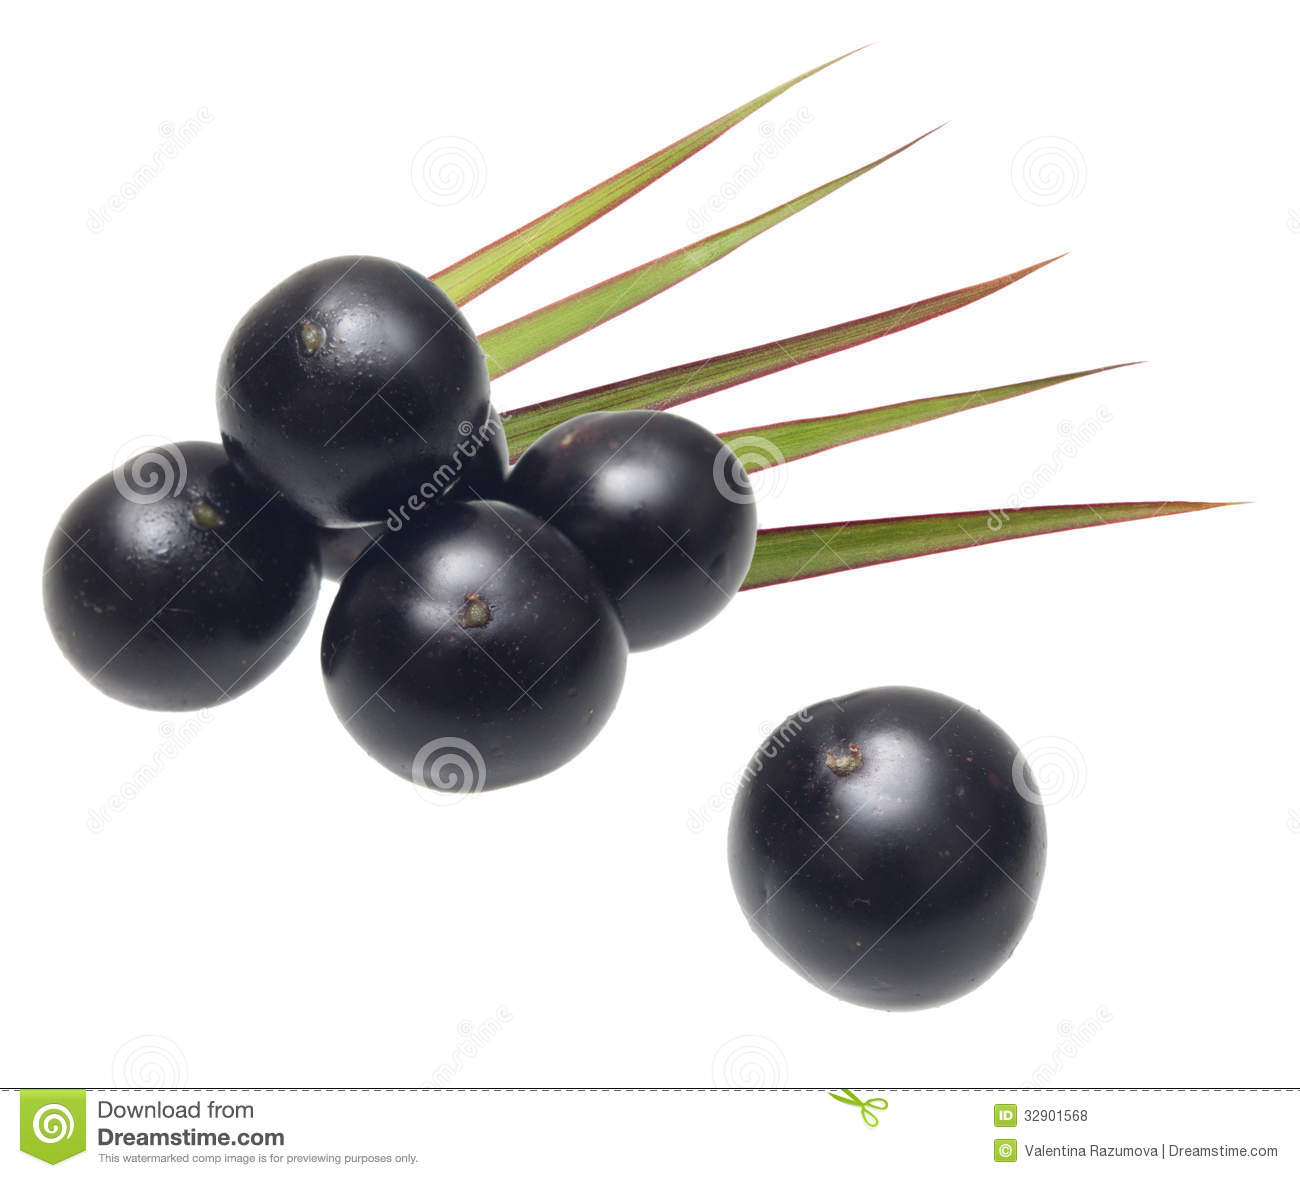 Acai berries amazon